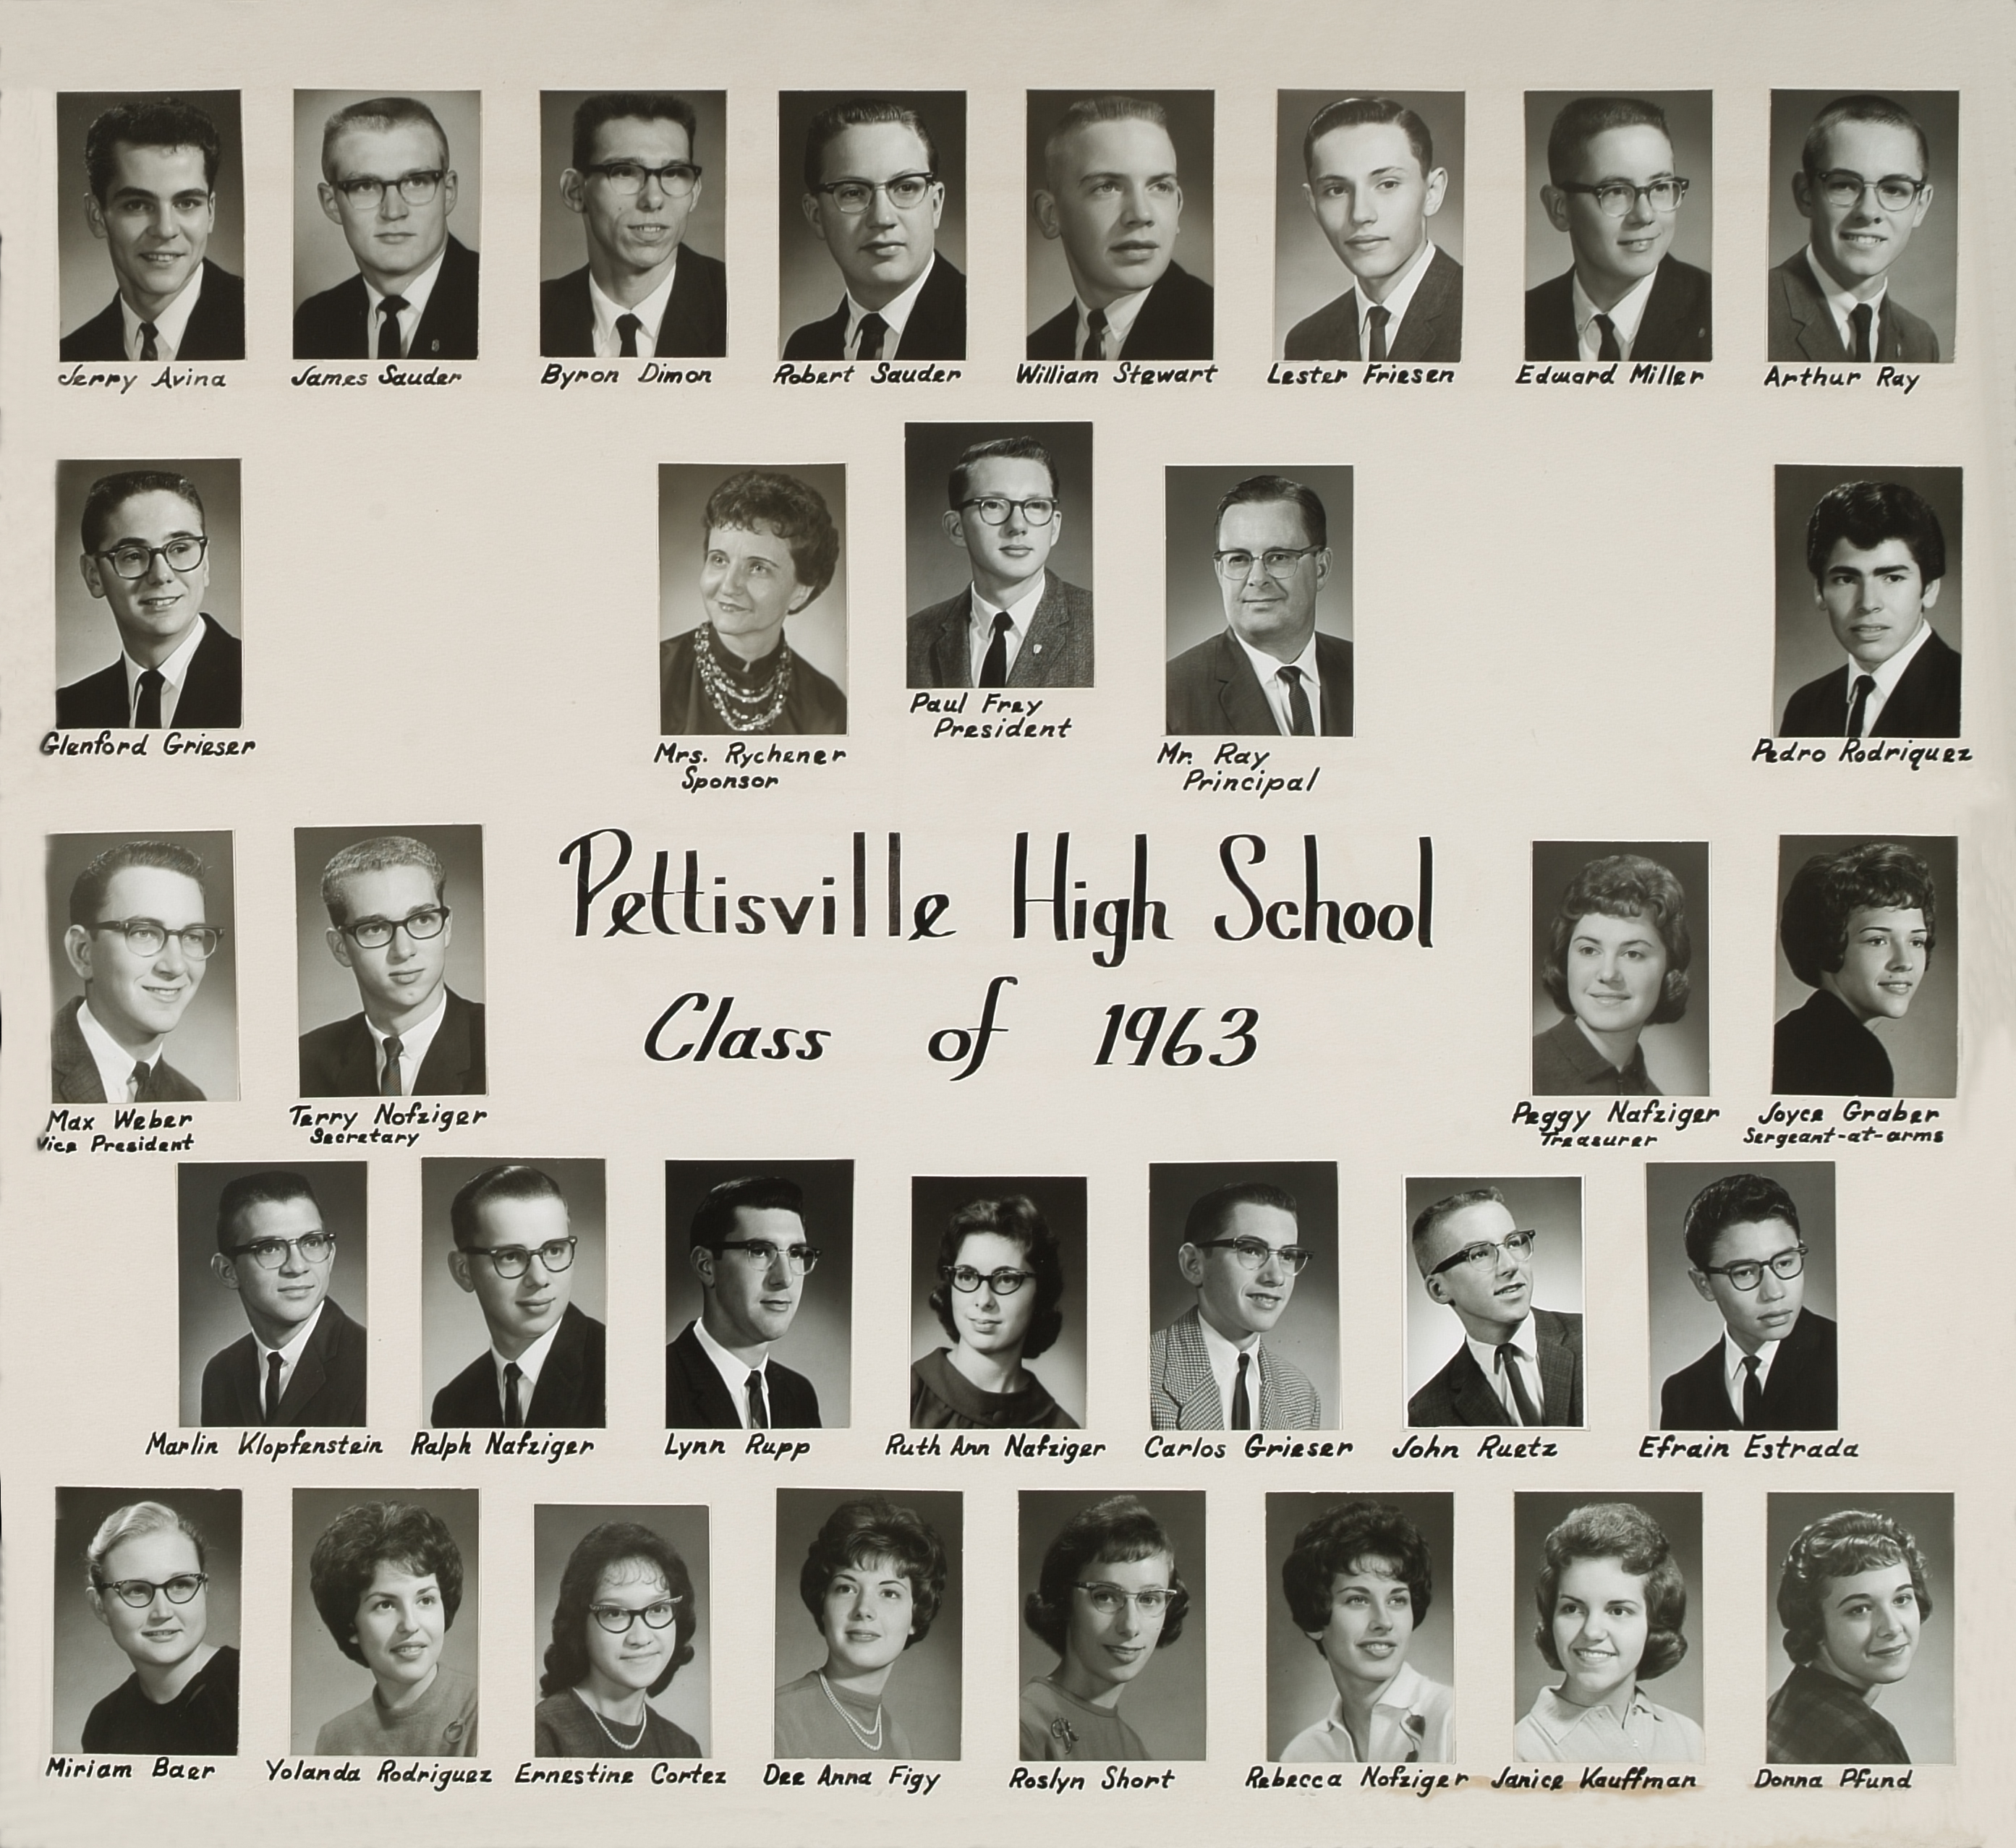 1611244862-1600709291-pettisville_high_school_class_composite_1963